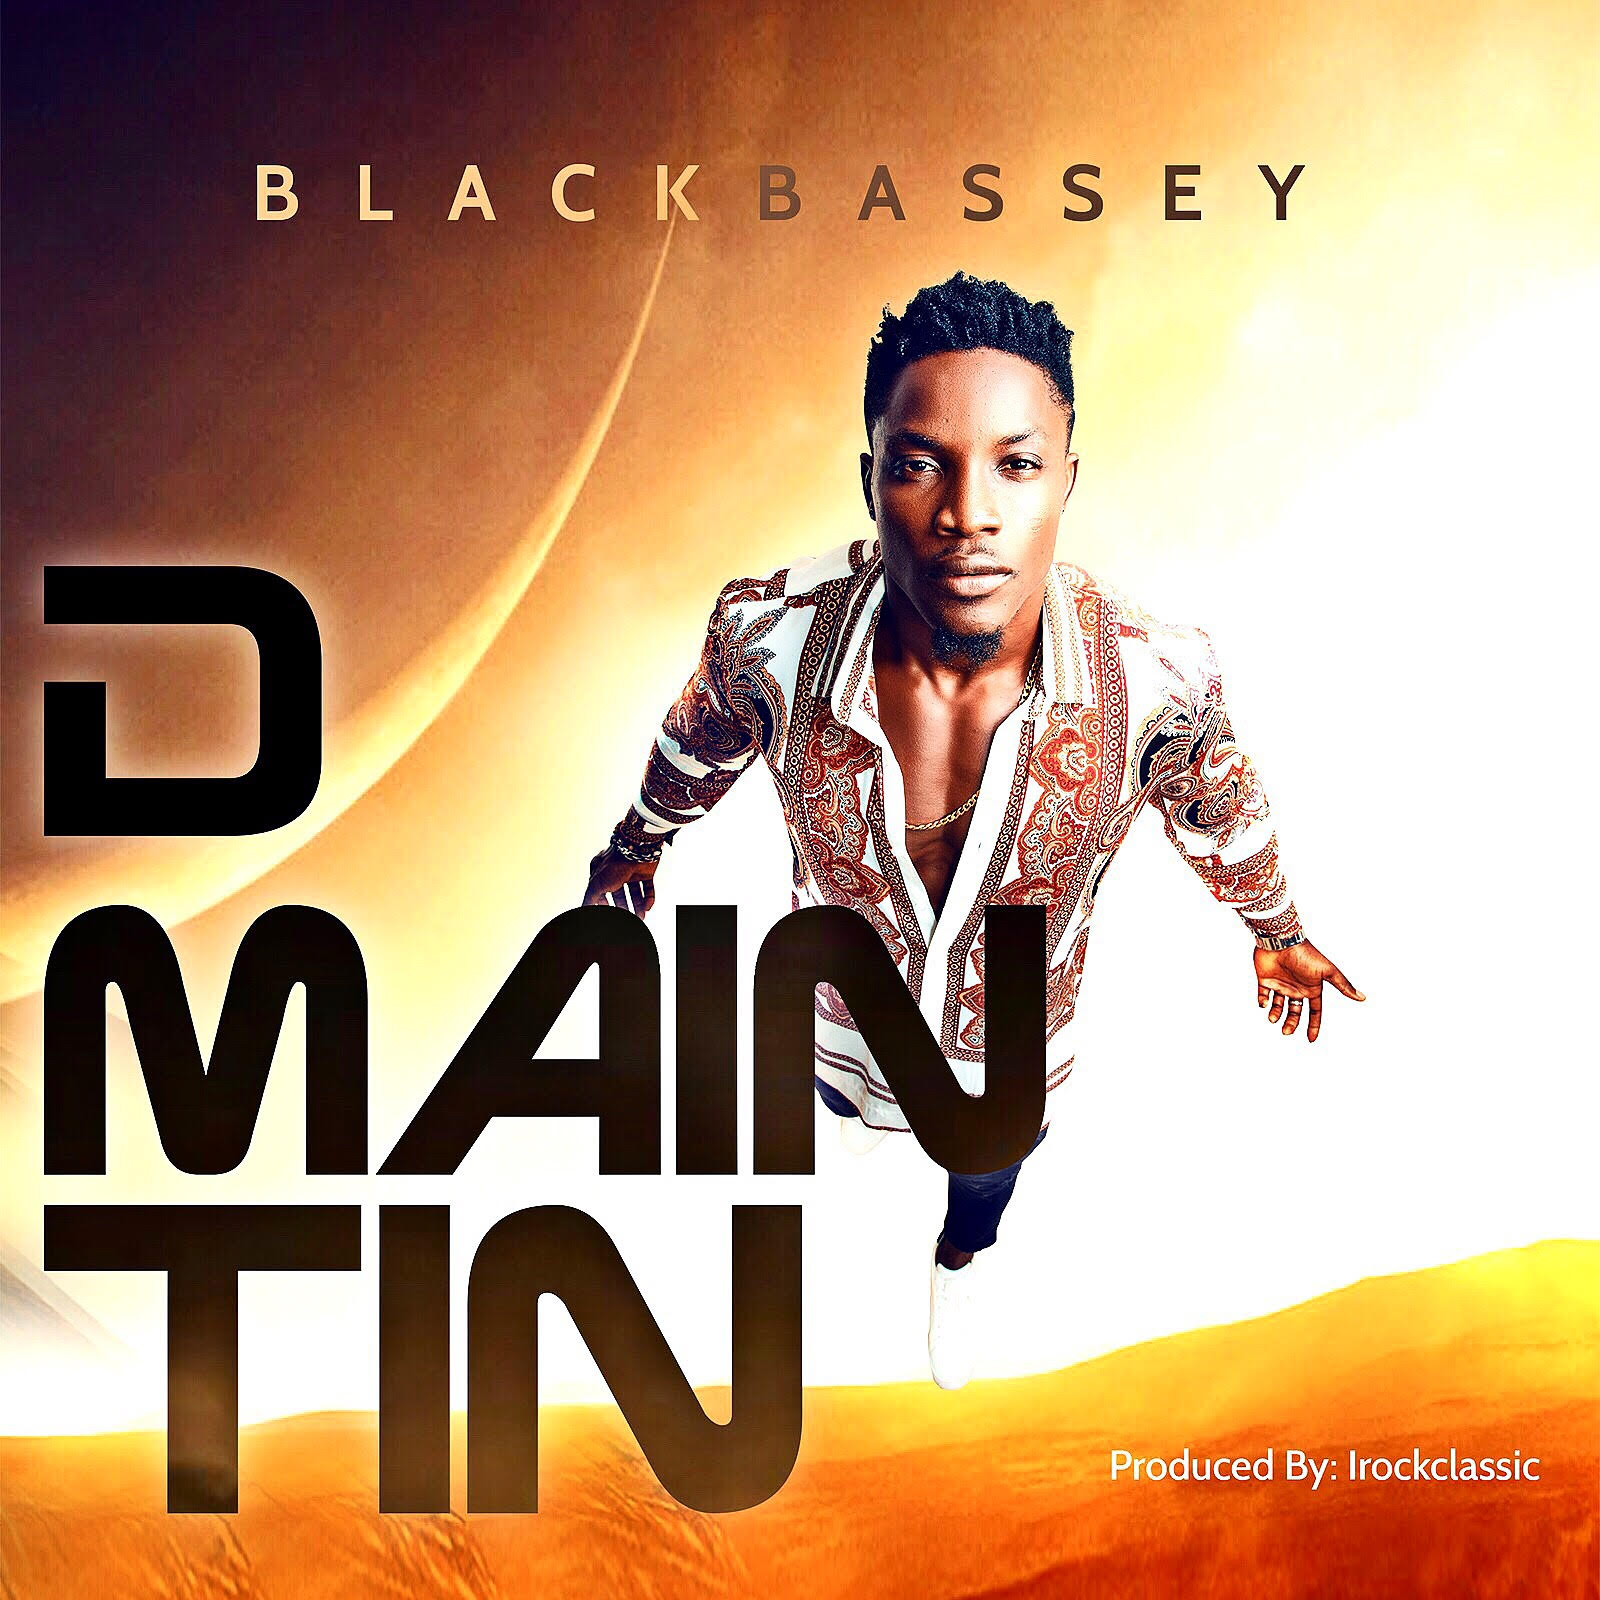 Video: Black Bassey (@Black_Bassey)- D' Main Tin  | Starring Bisola, Efe, Uriel, Marvis, Kemen